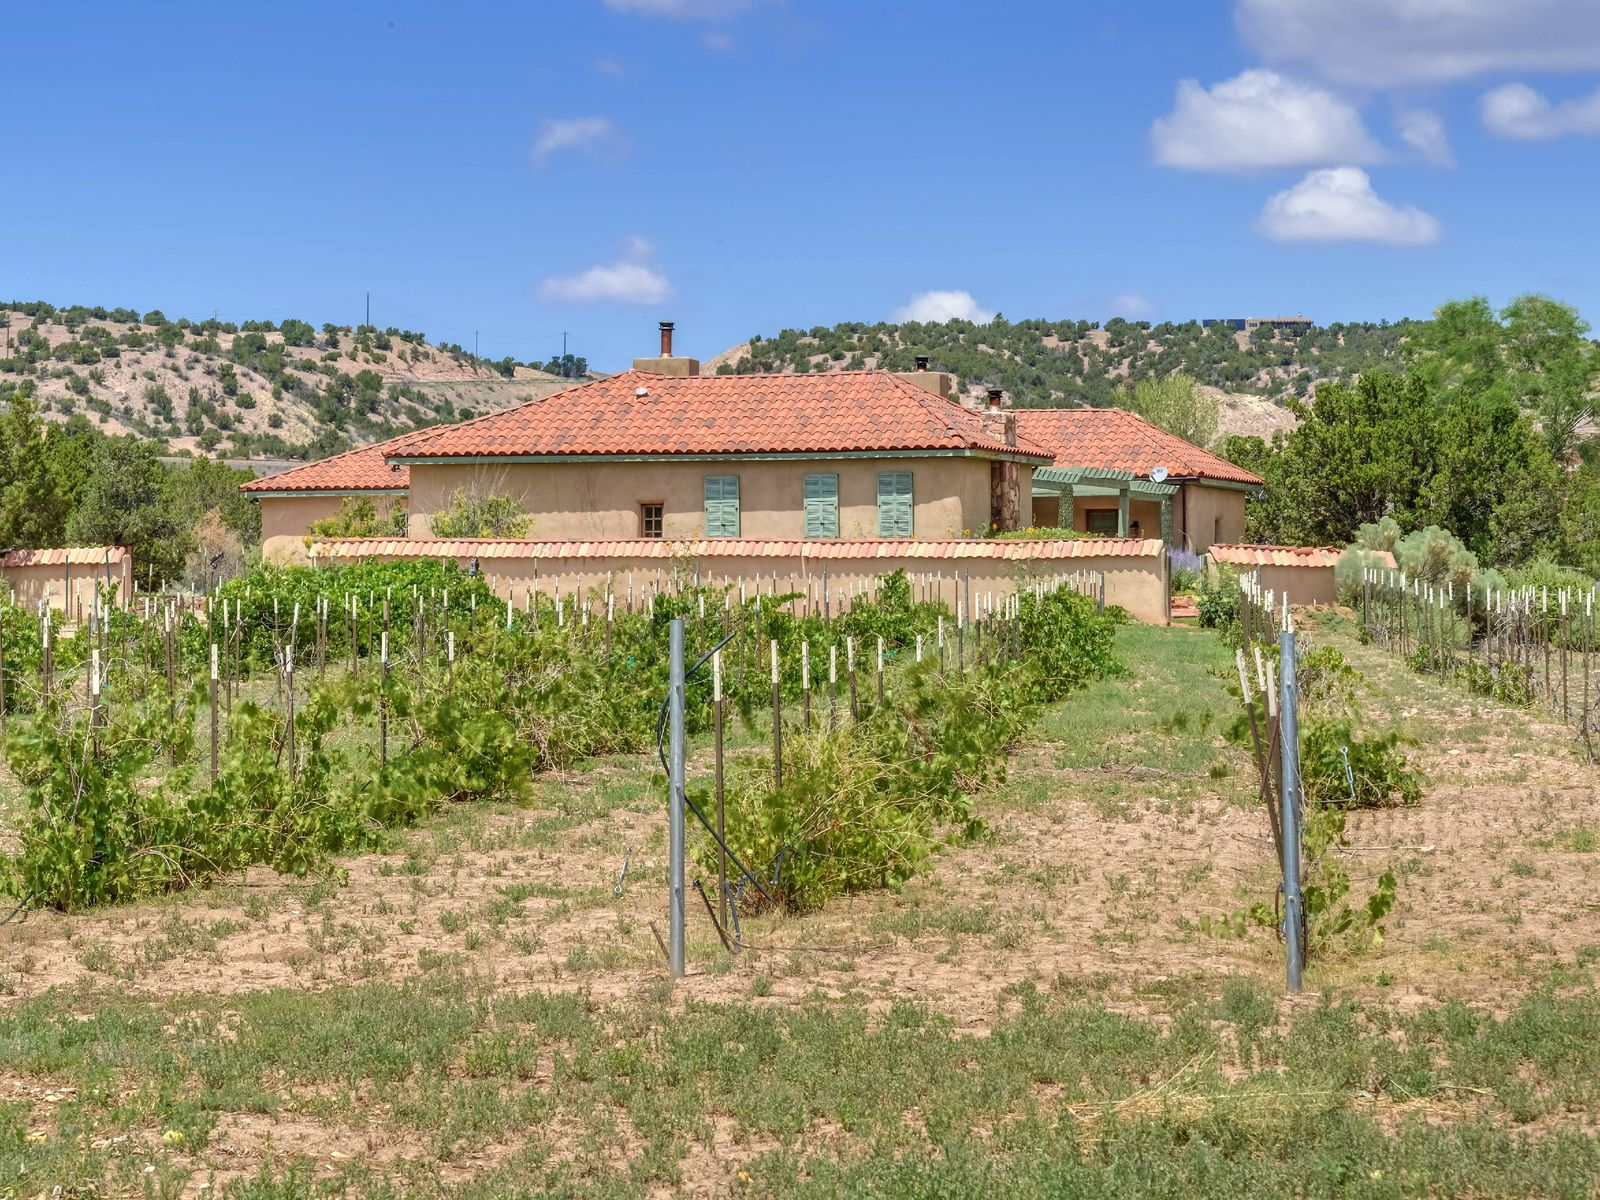 20 Cerro Alto Road., Lamy NM Single Family Home - Santa Fe Real Estate